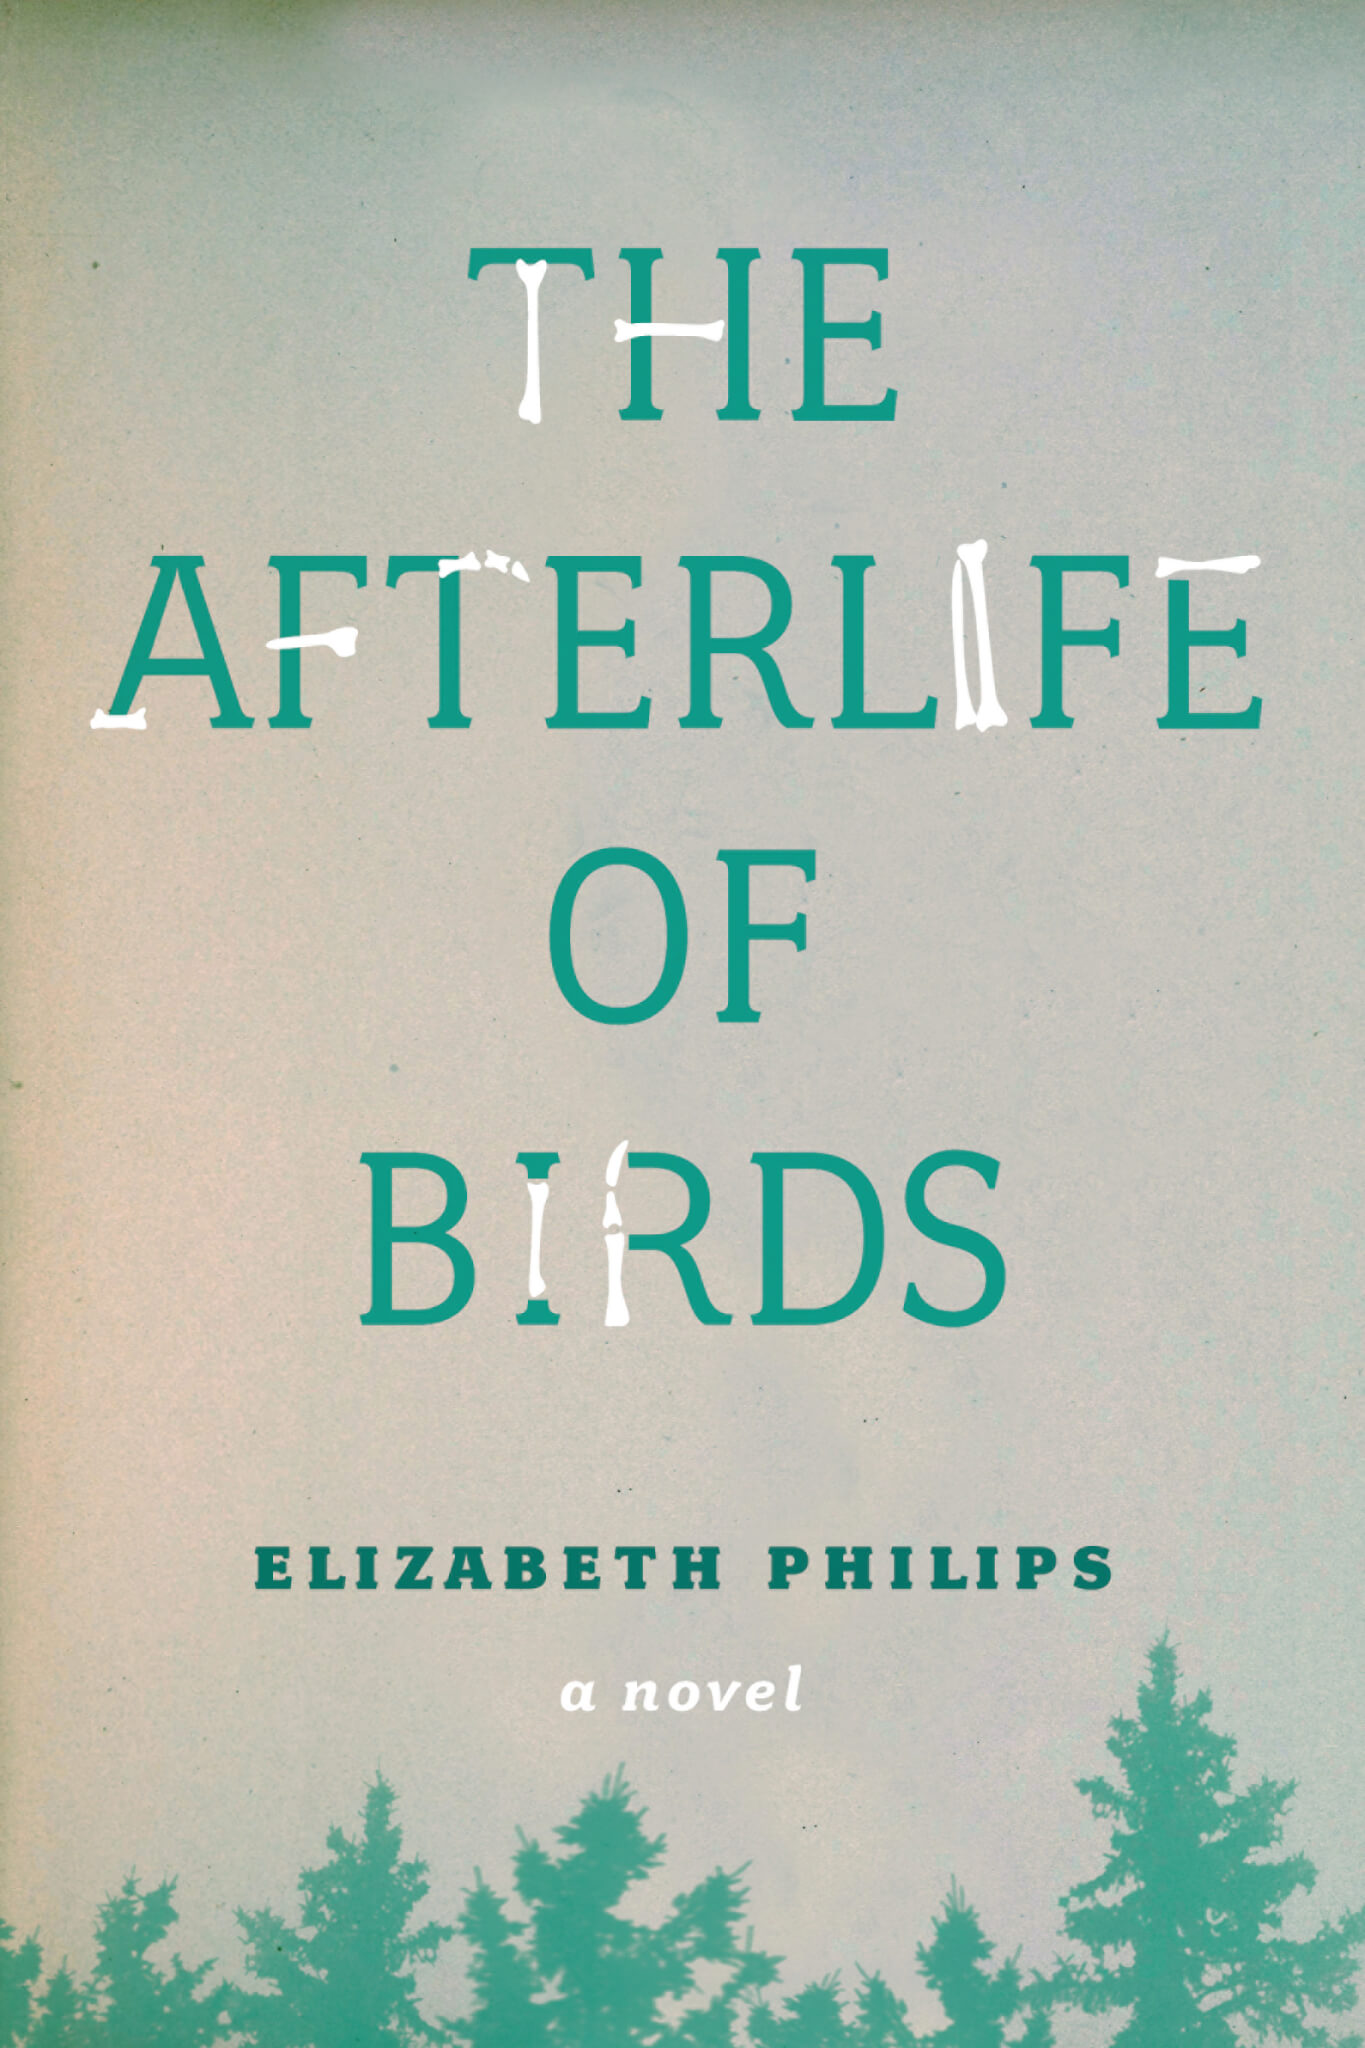 The Afterlife of Birds book jacket